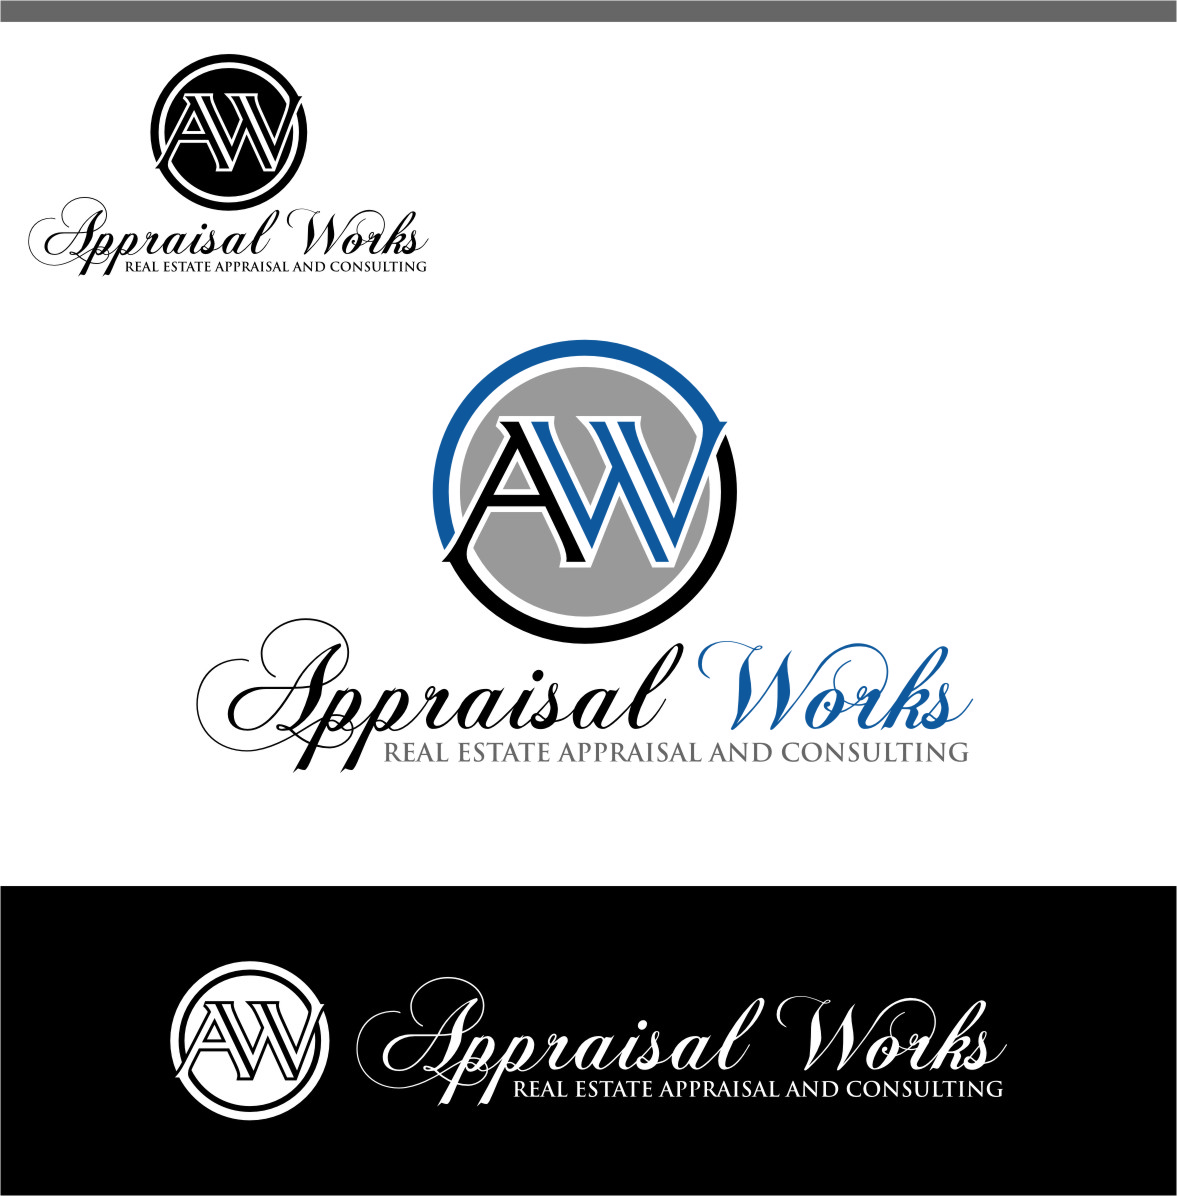 Logo Design by Ngepet_art - Entry No. 80 in the Logo Design Contest Appraisal Works Logo Design.